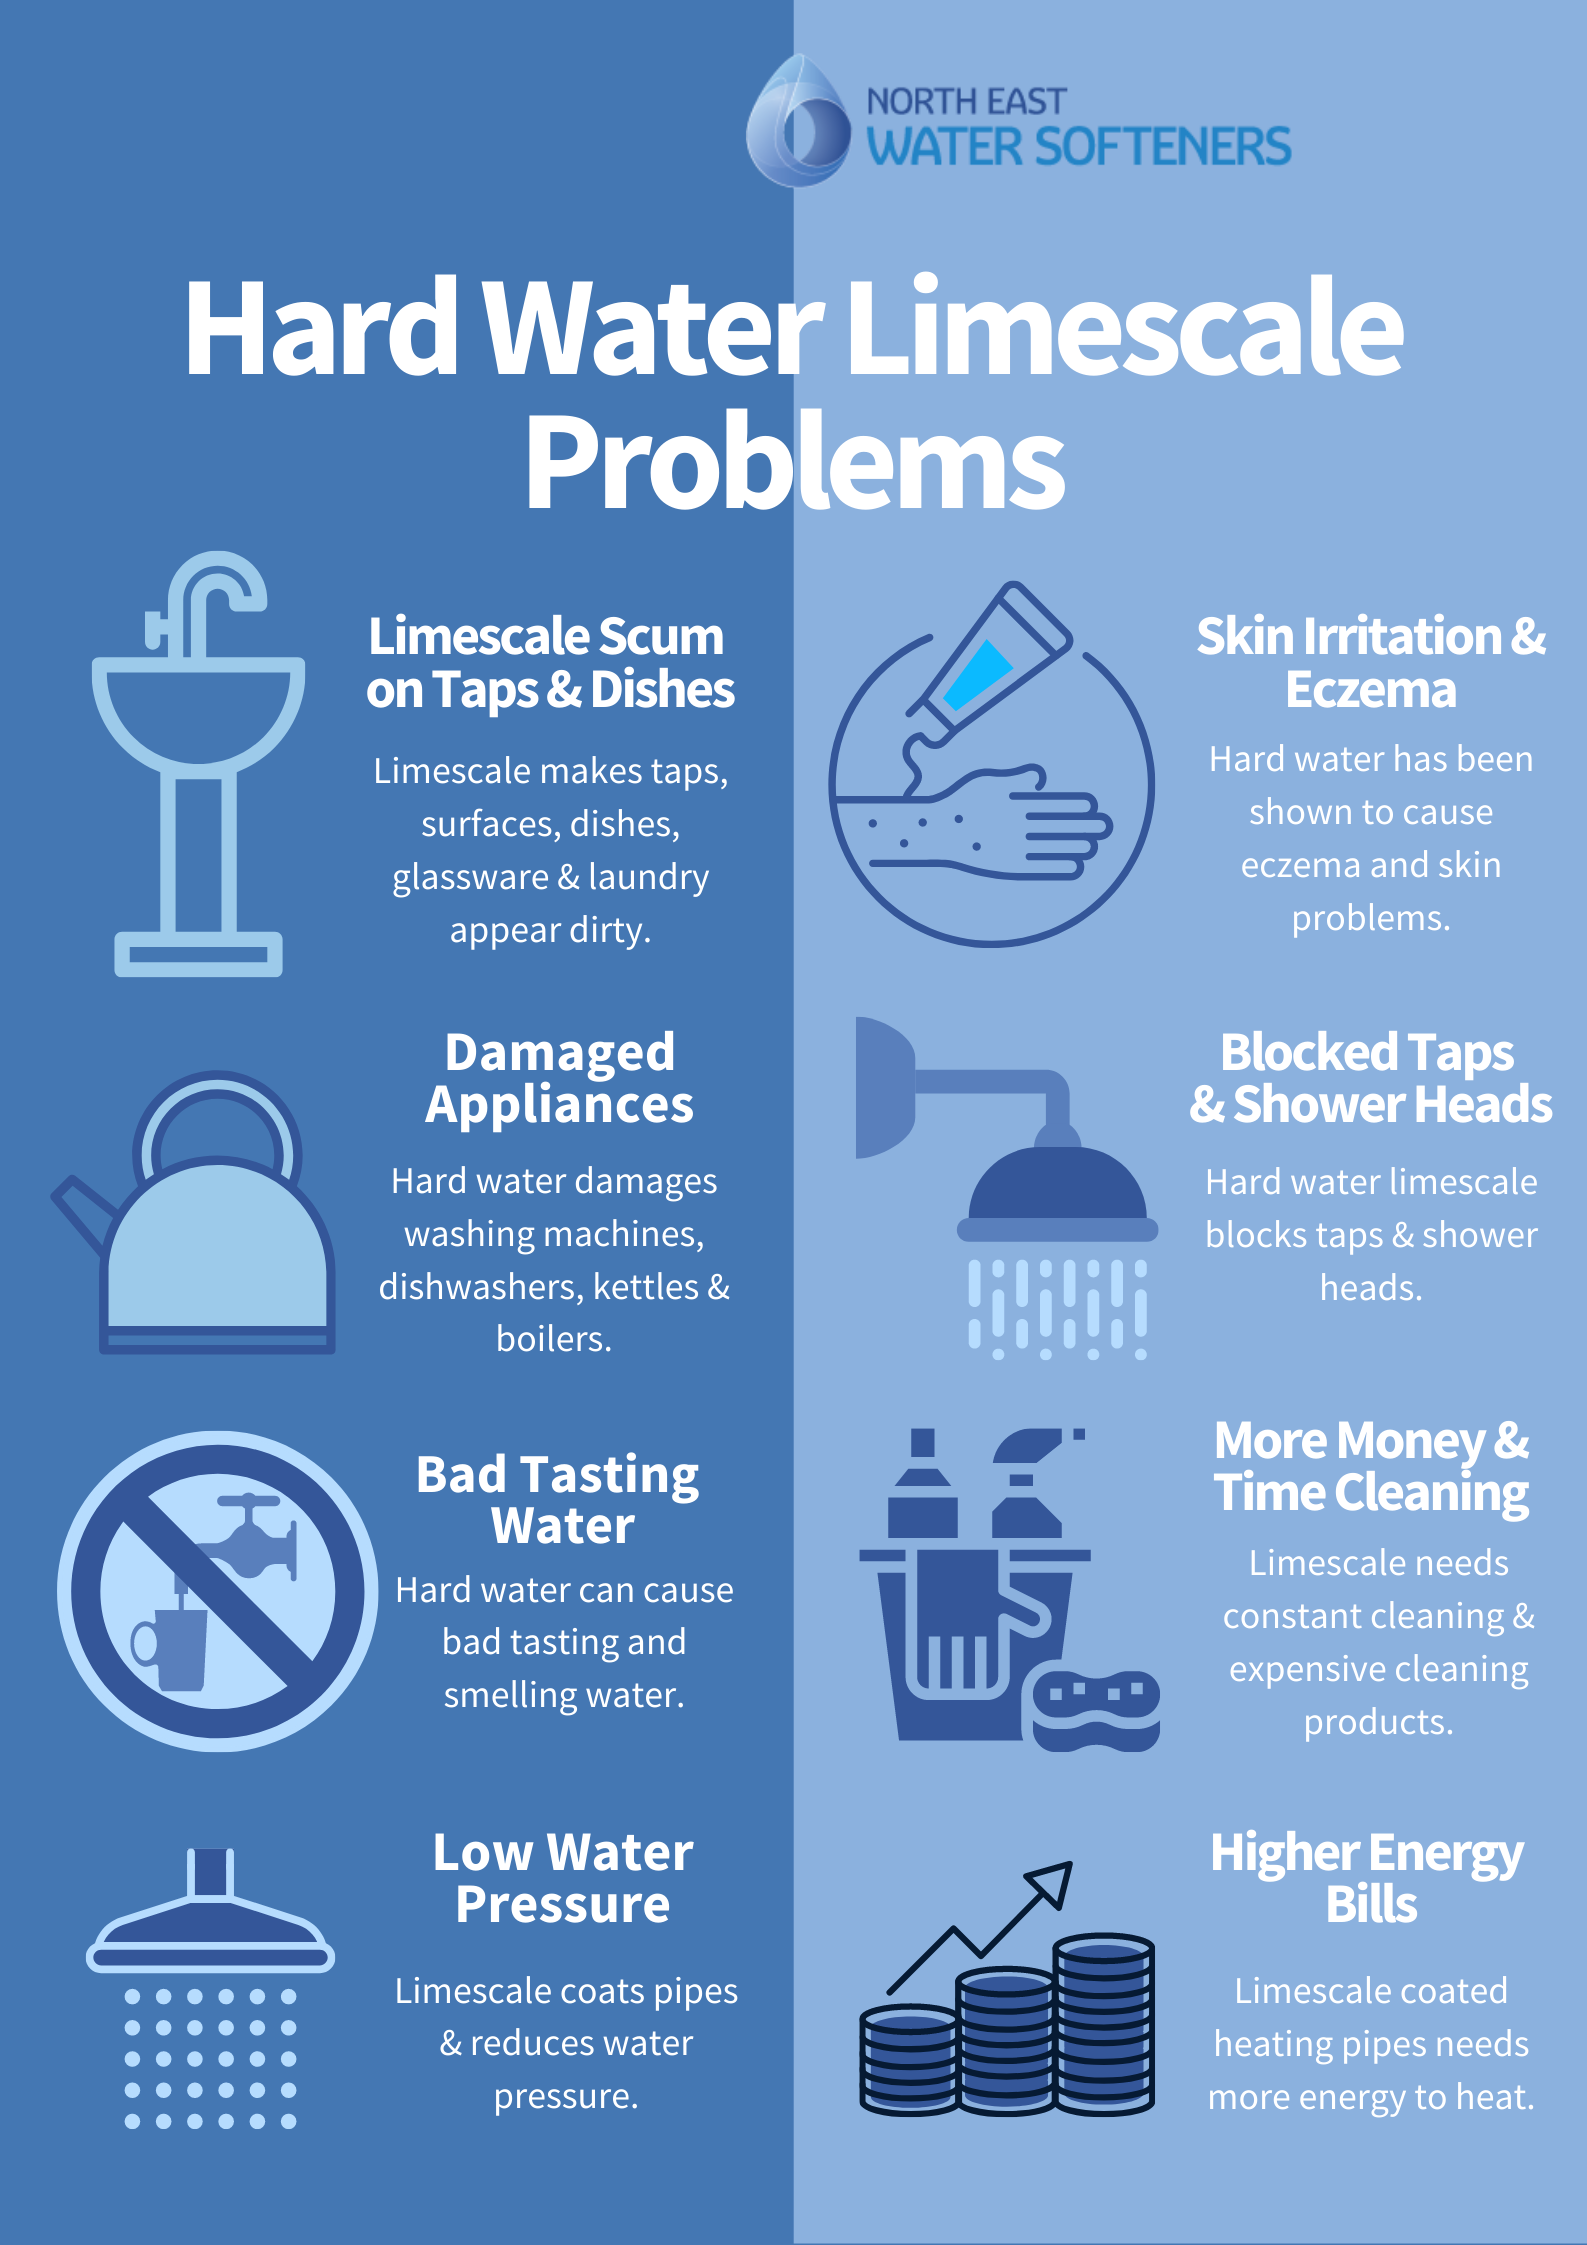 hard water limescale problems infographic